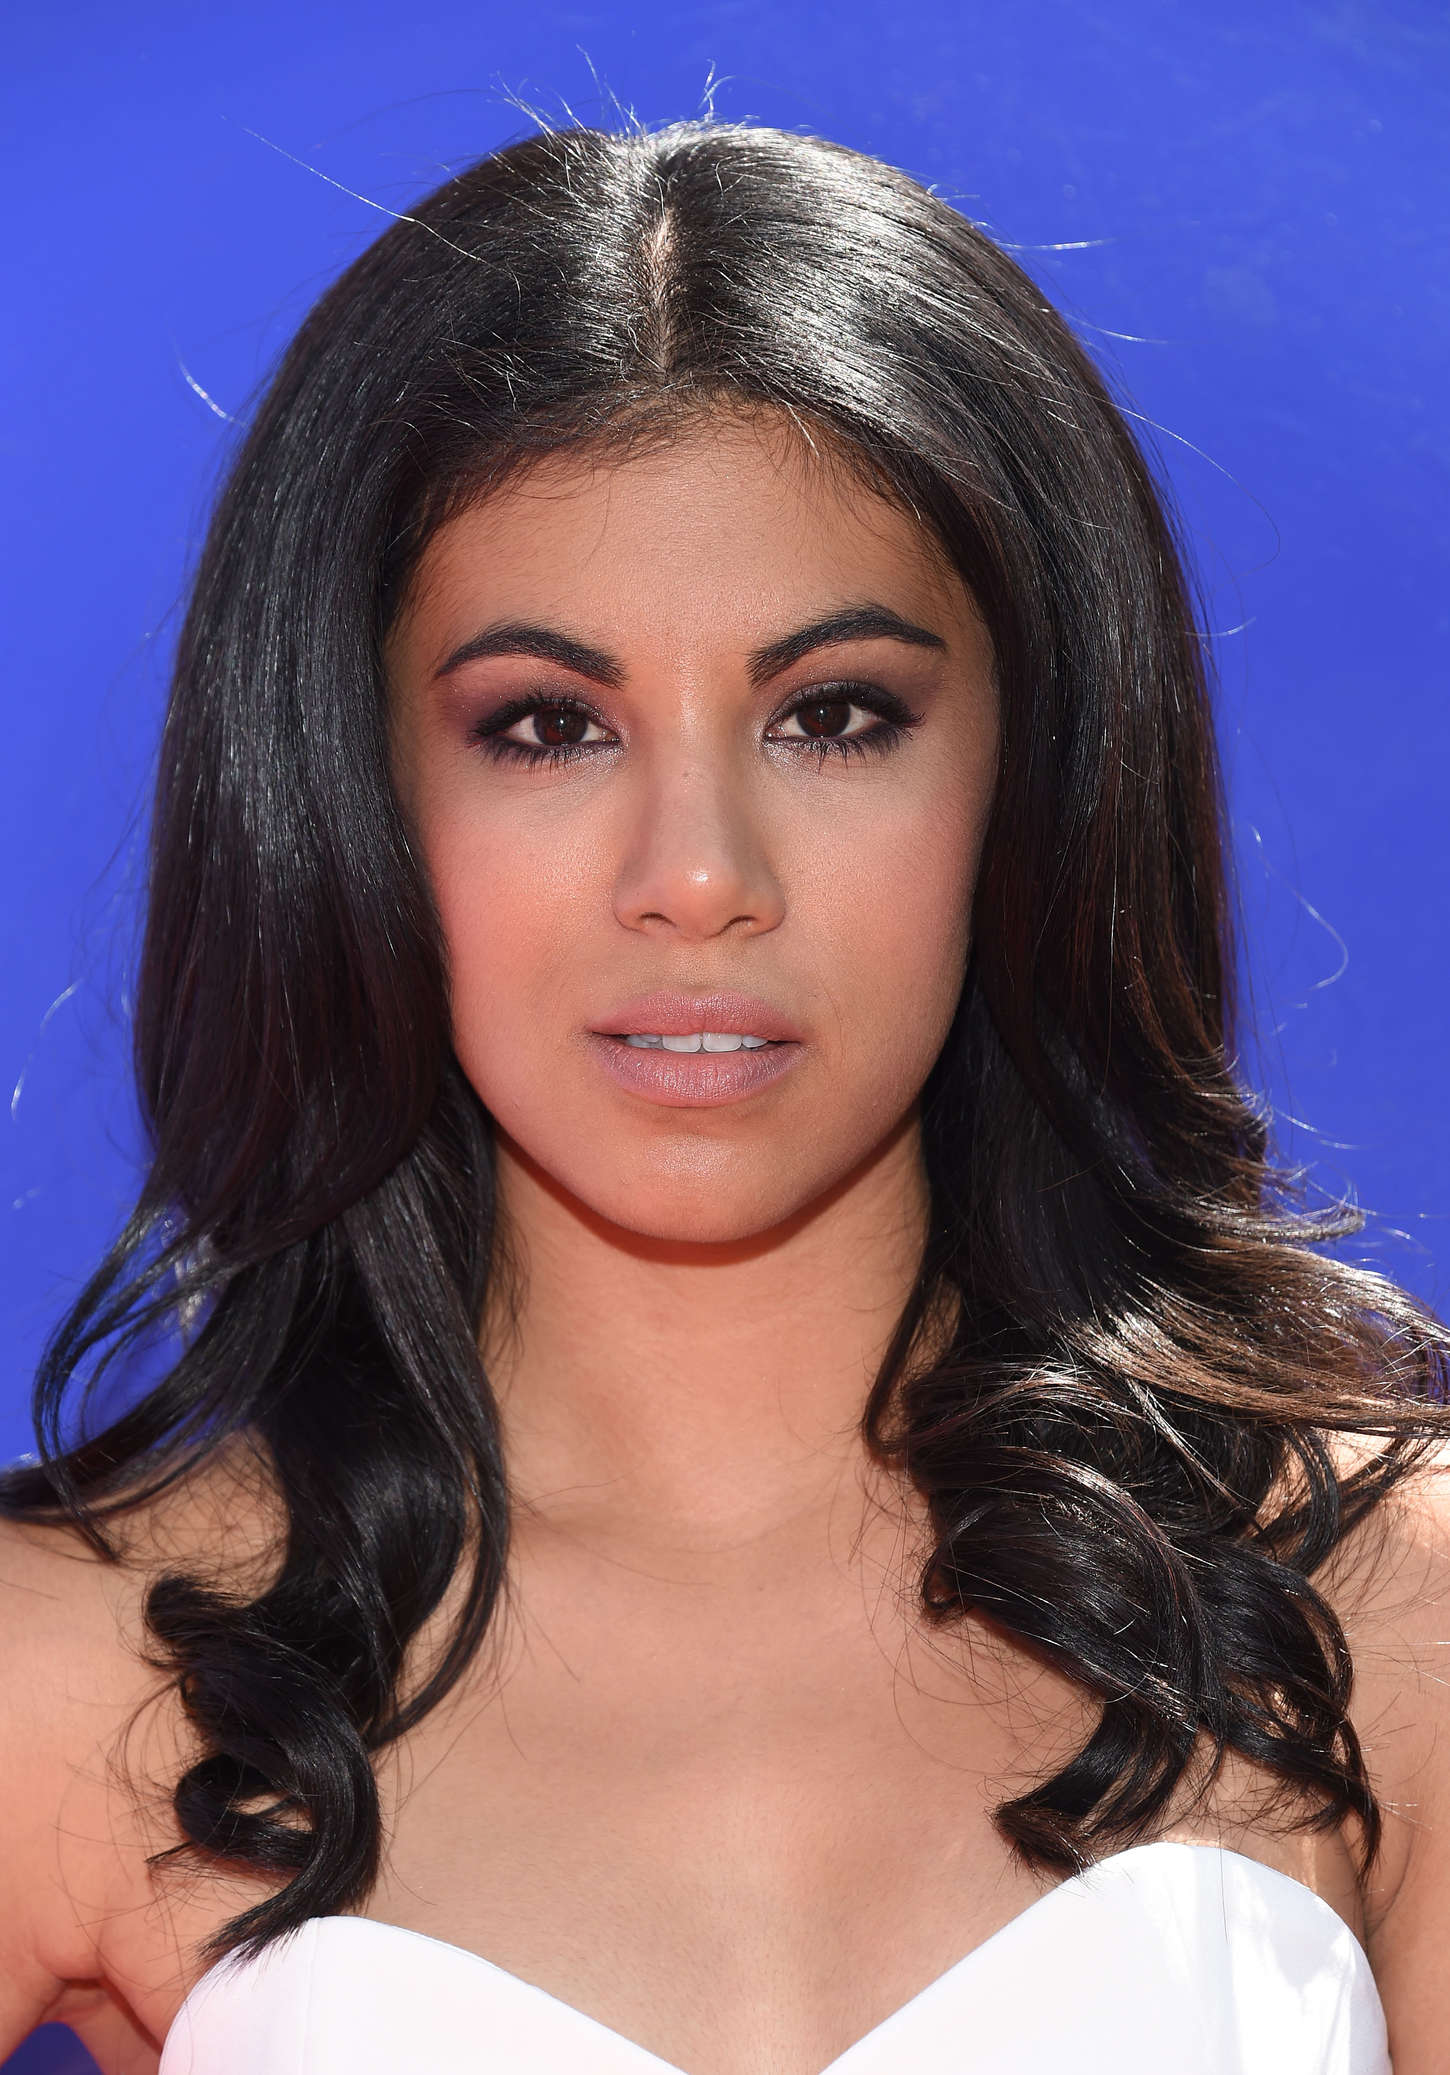 Chrissie Fit Teen Beach Premiere in Burbank